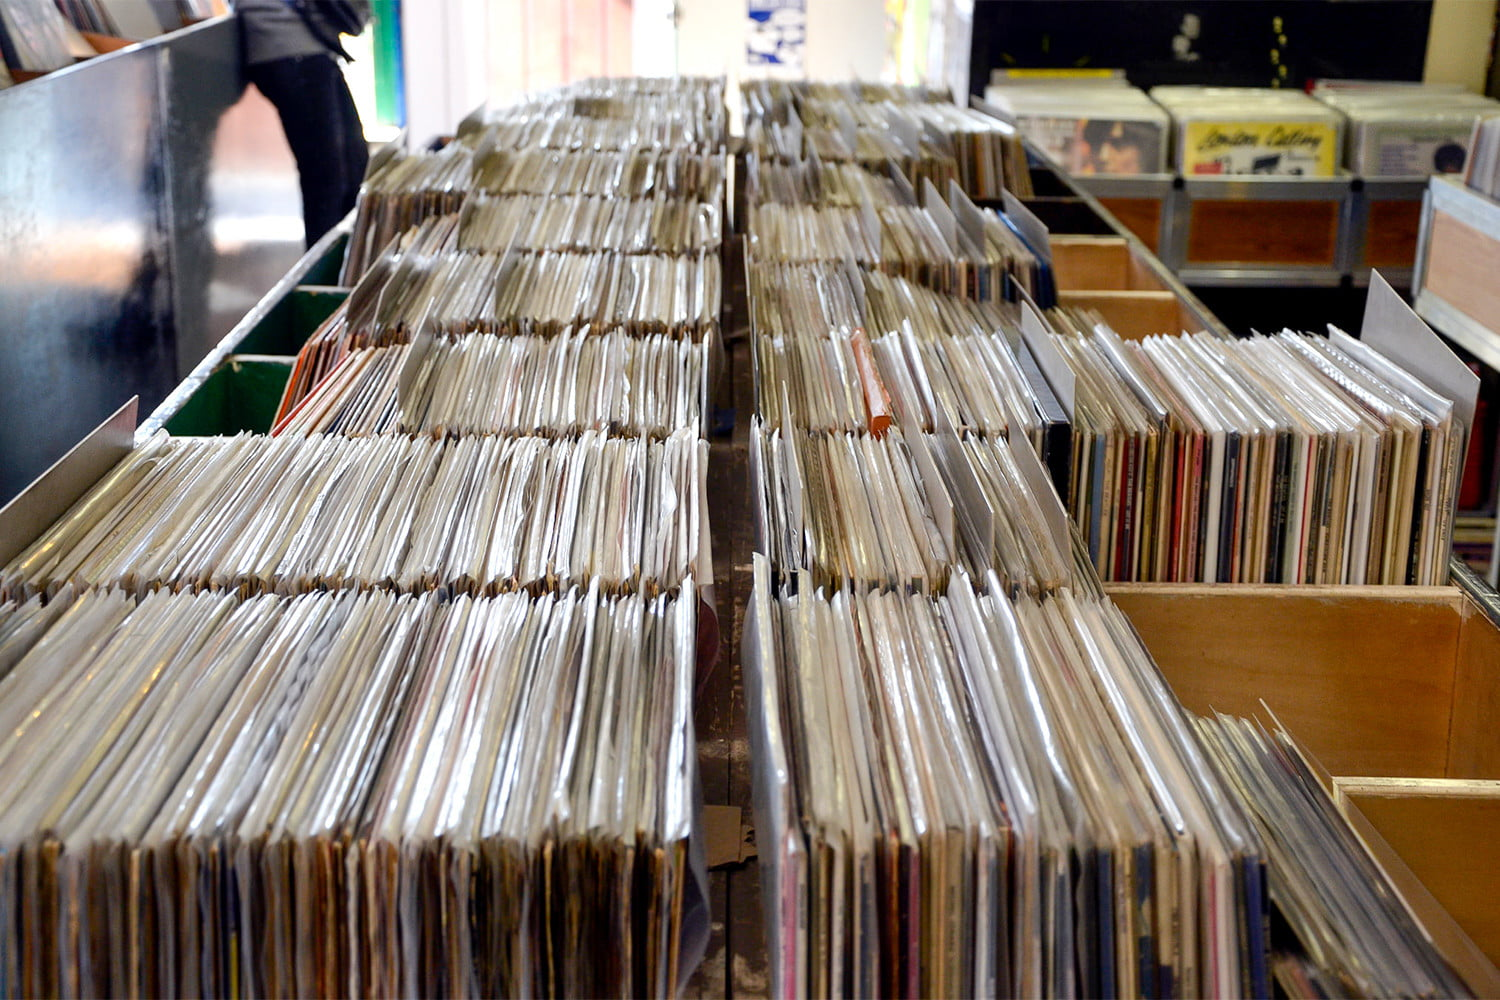 How to Start, Build, and Preserve a Perfect Vinyl Collection